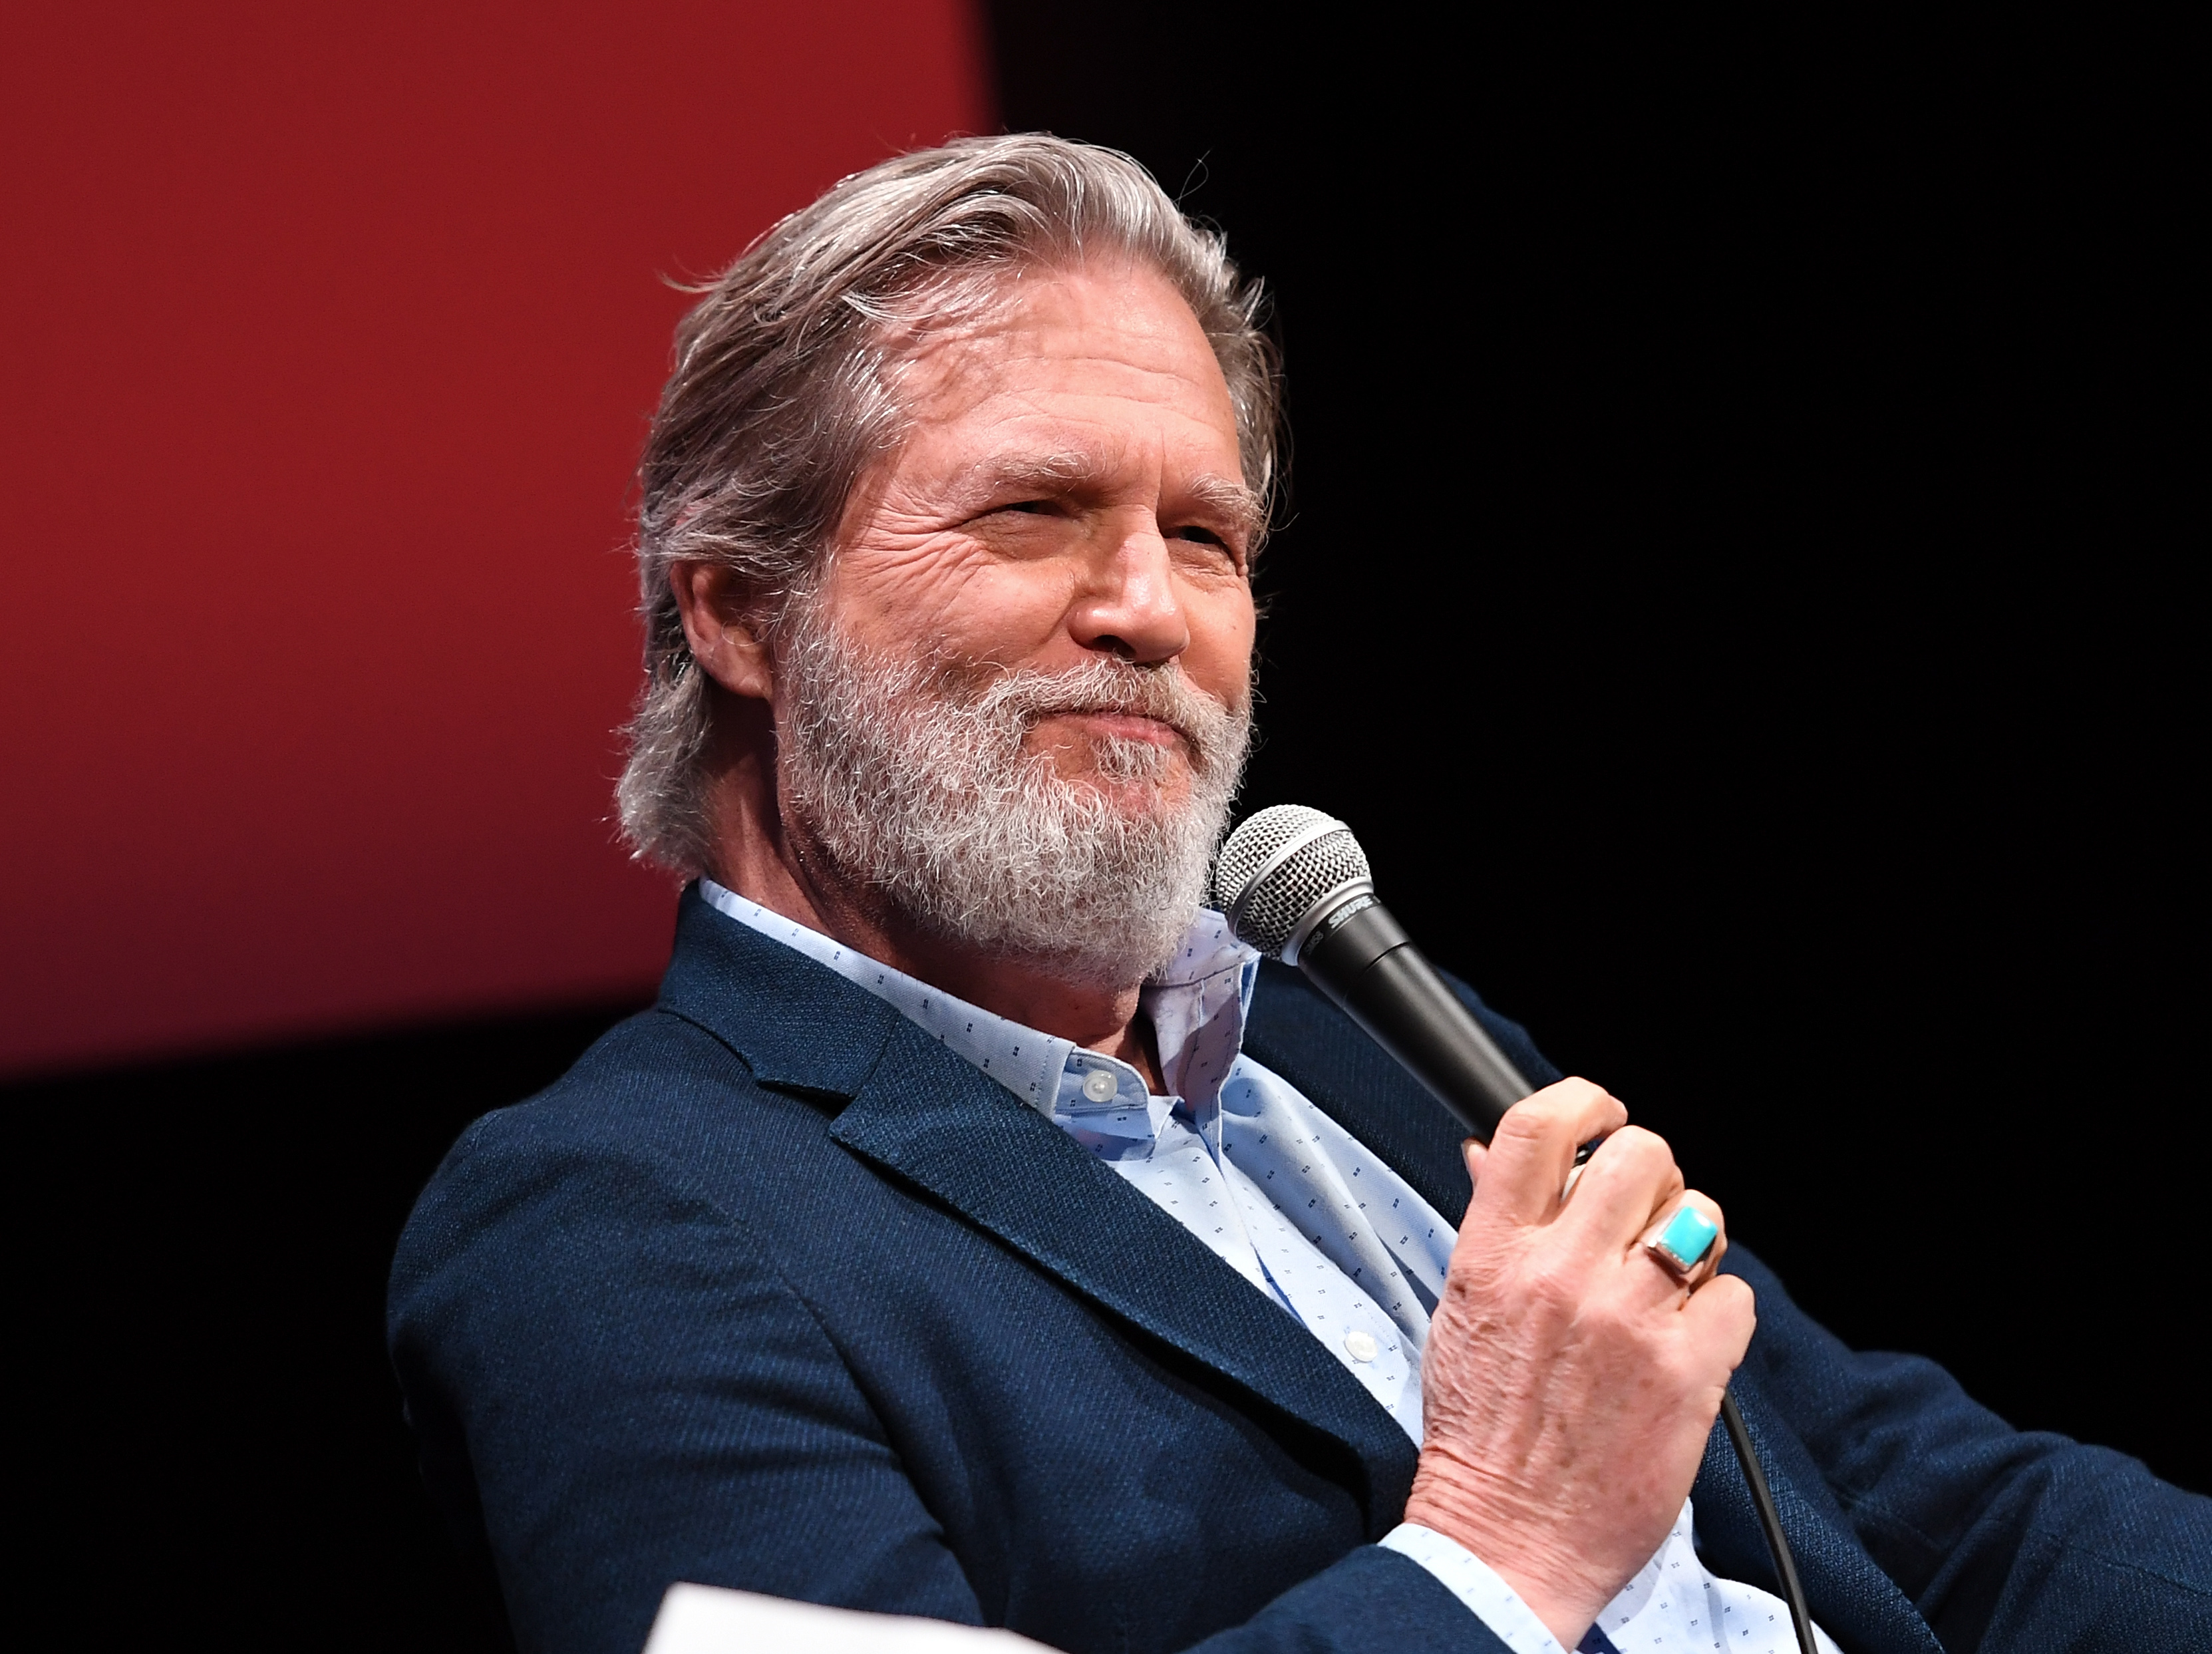 Actor Jeff Bridges speaks on January 4, 2017, during an event in New York.